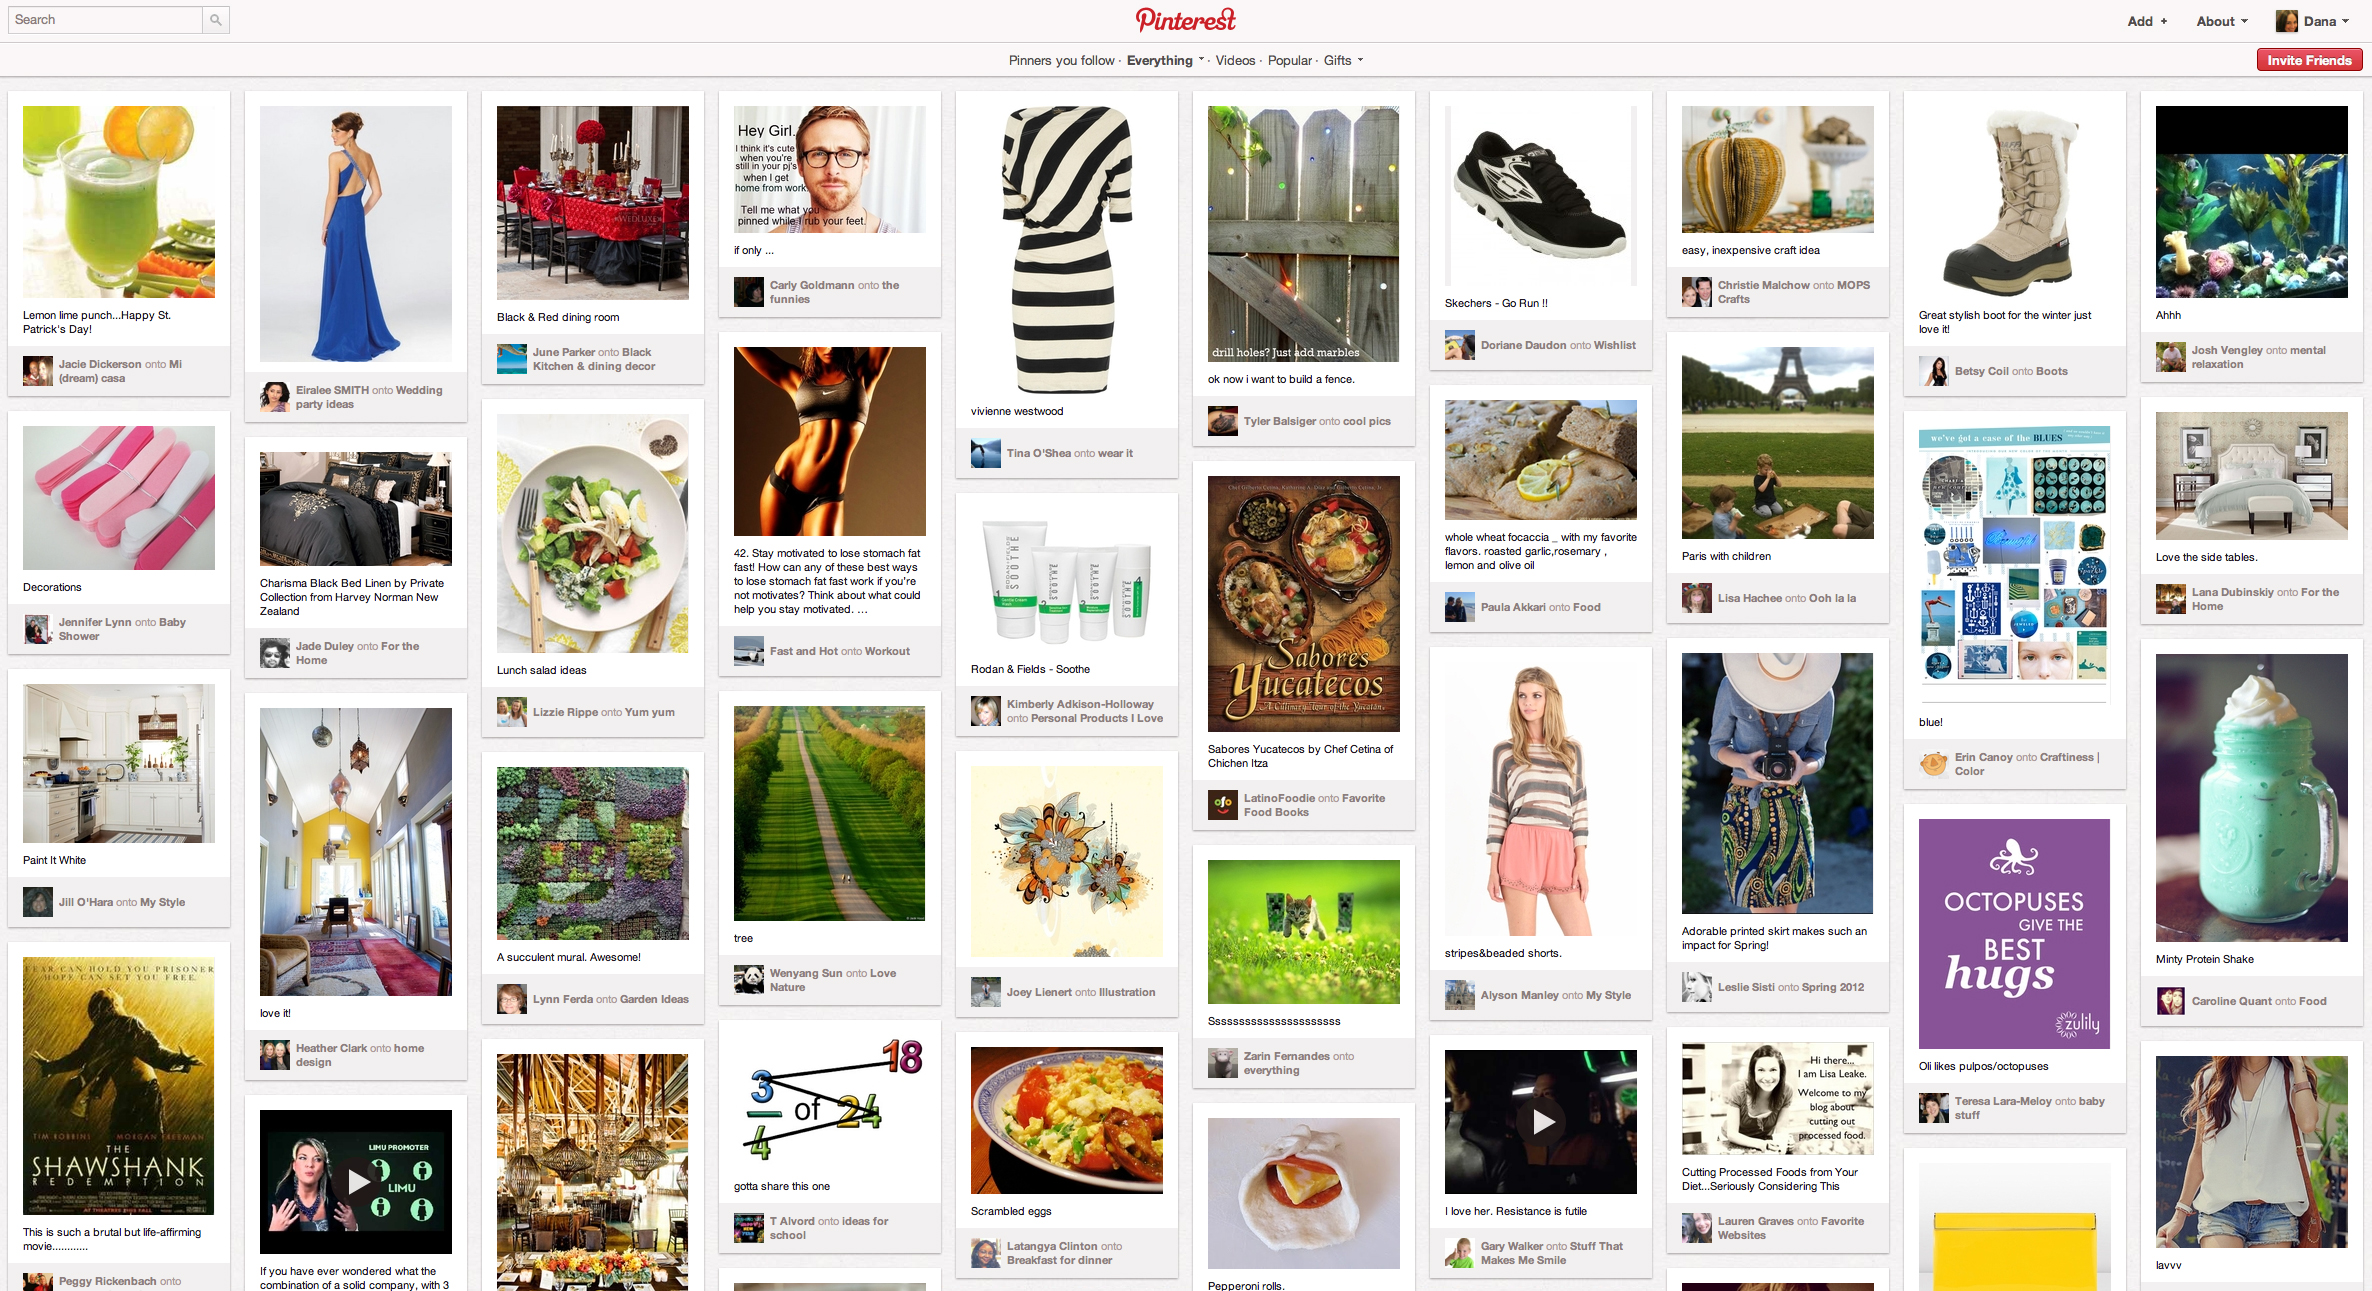 Pintures Pinterest Adds Features As It Looks To Monetize 55 Million